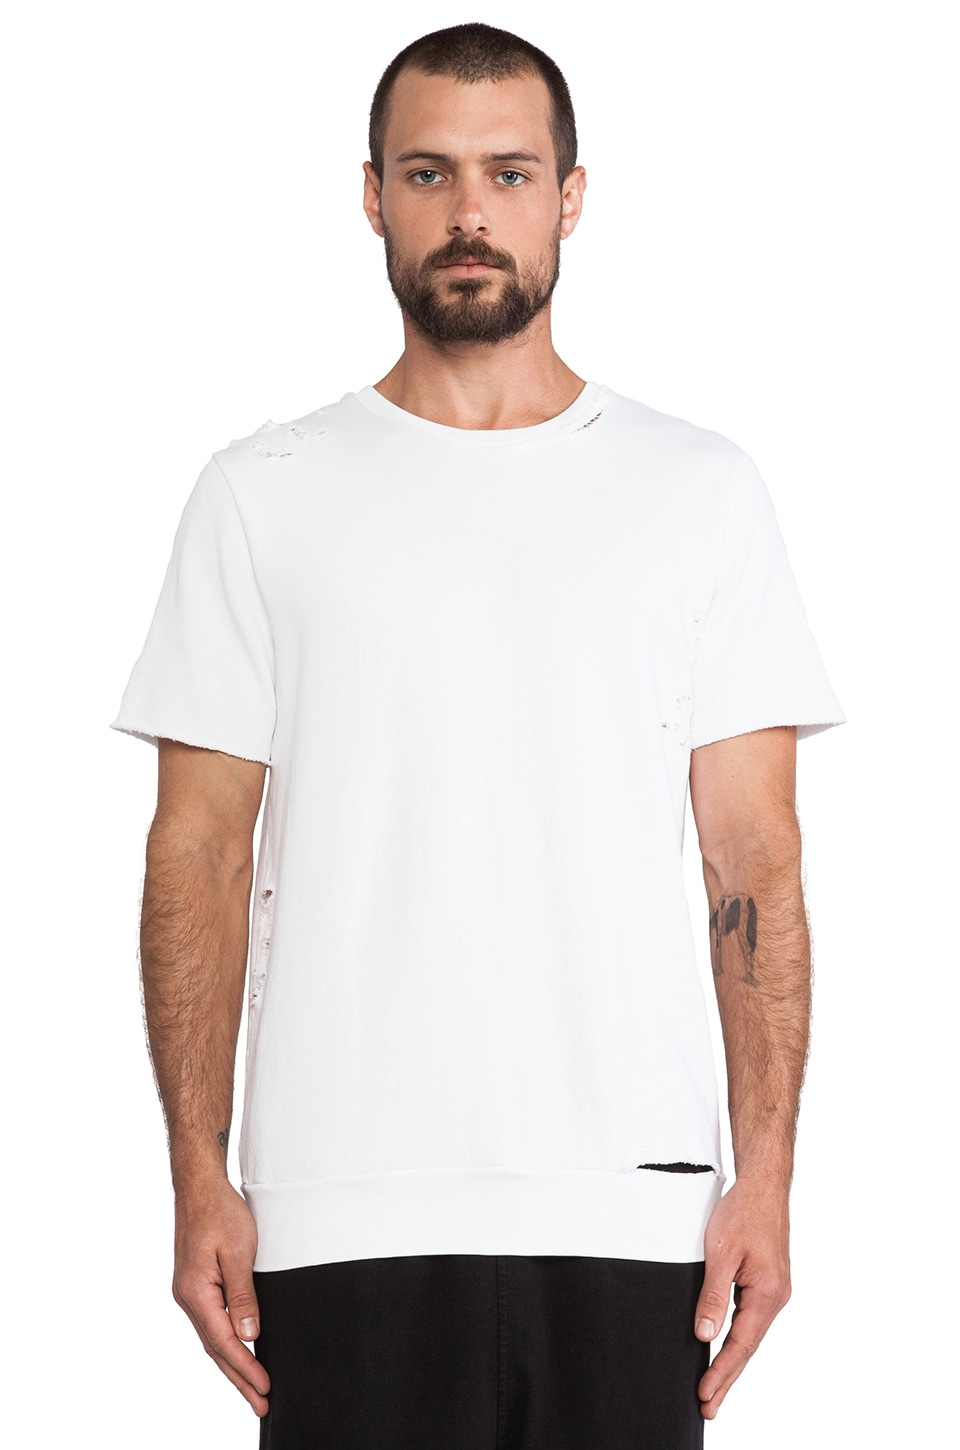 Drifter Ken Short Sleeve Sweatshirt in White